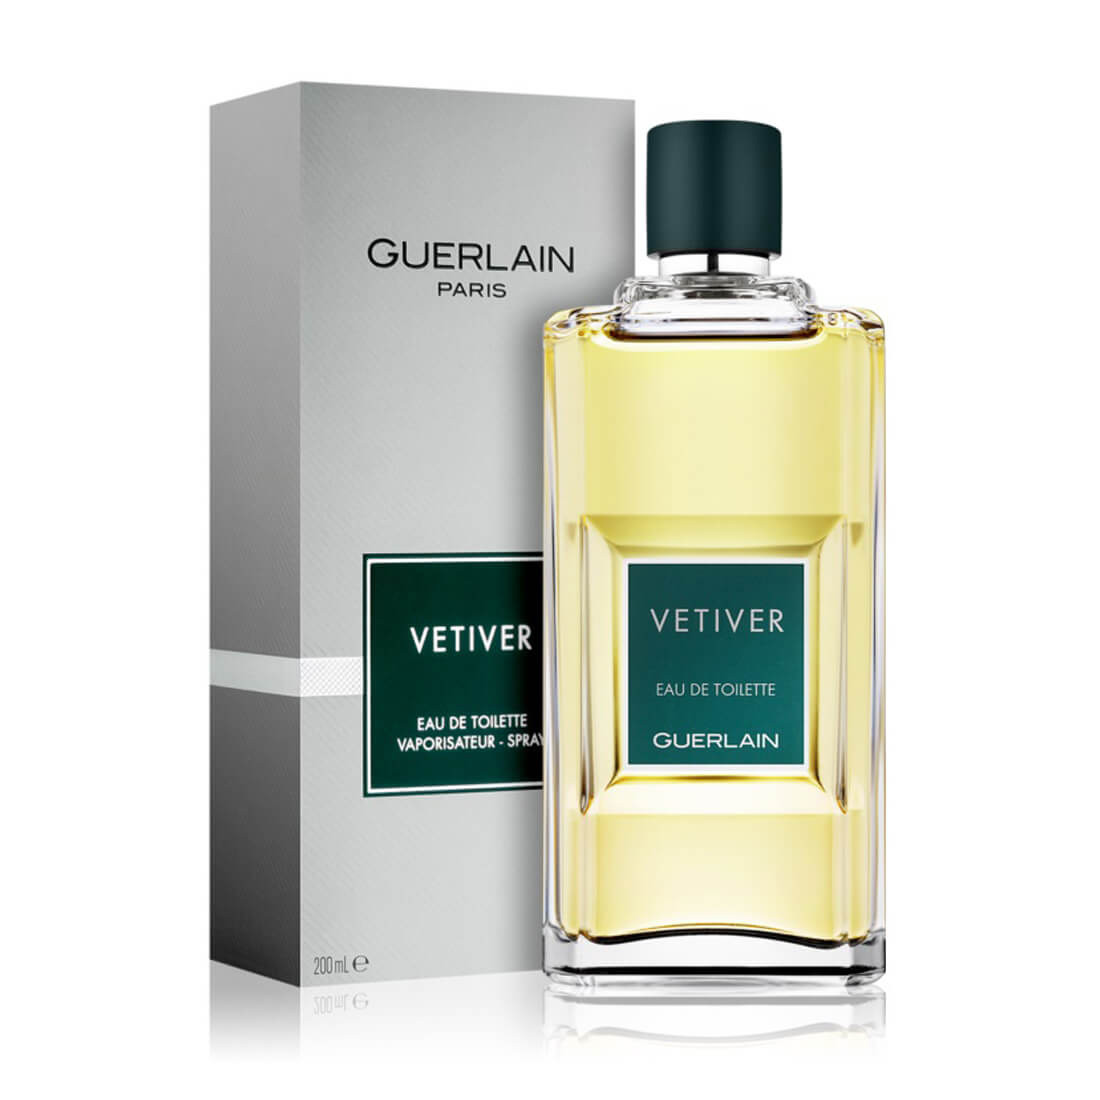 Guerlain Vetiver Eau De Toilette Perfume For Men - 200ml